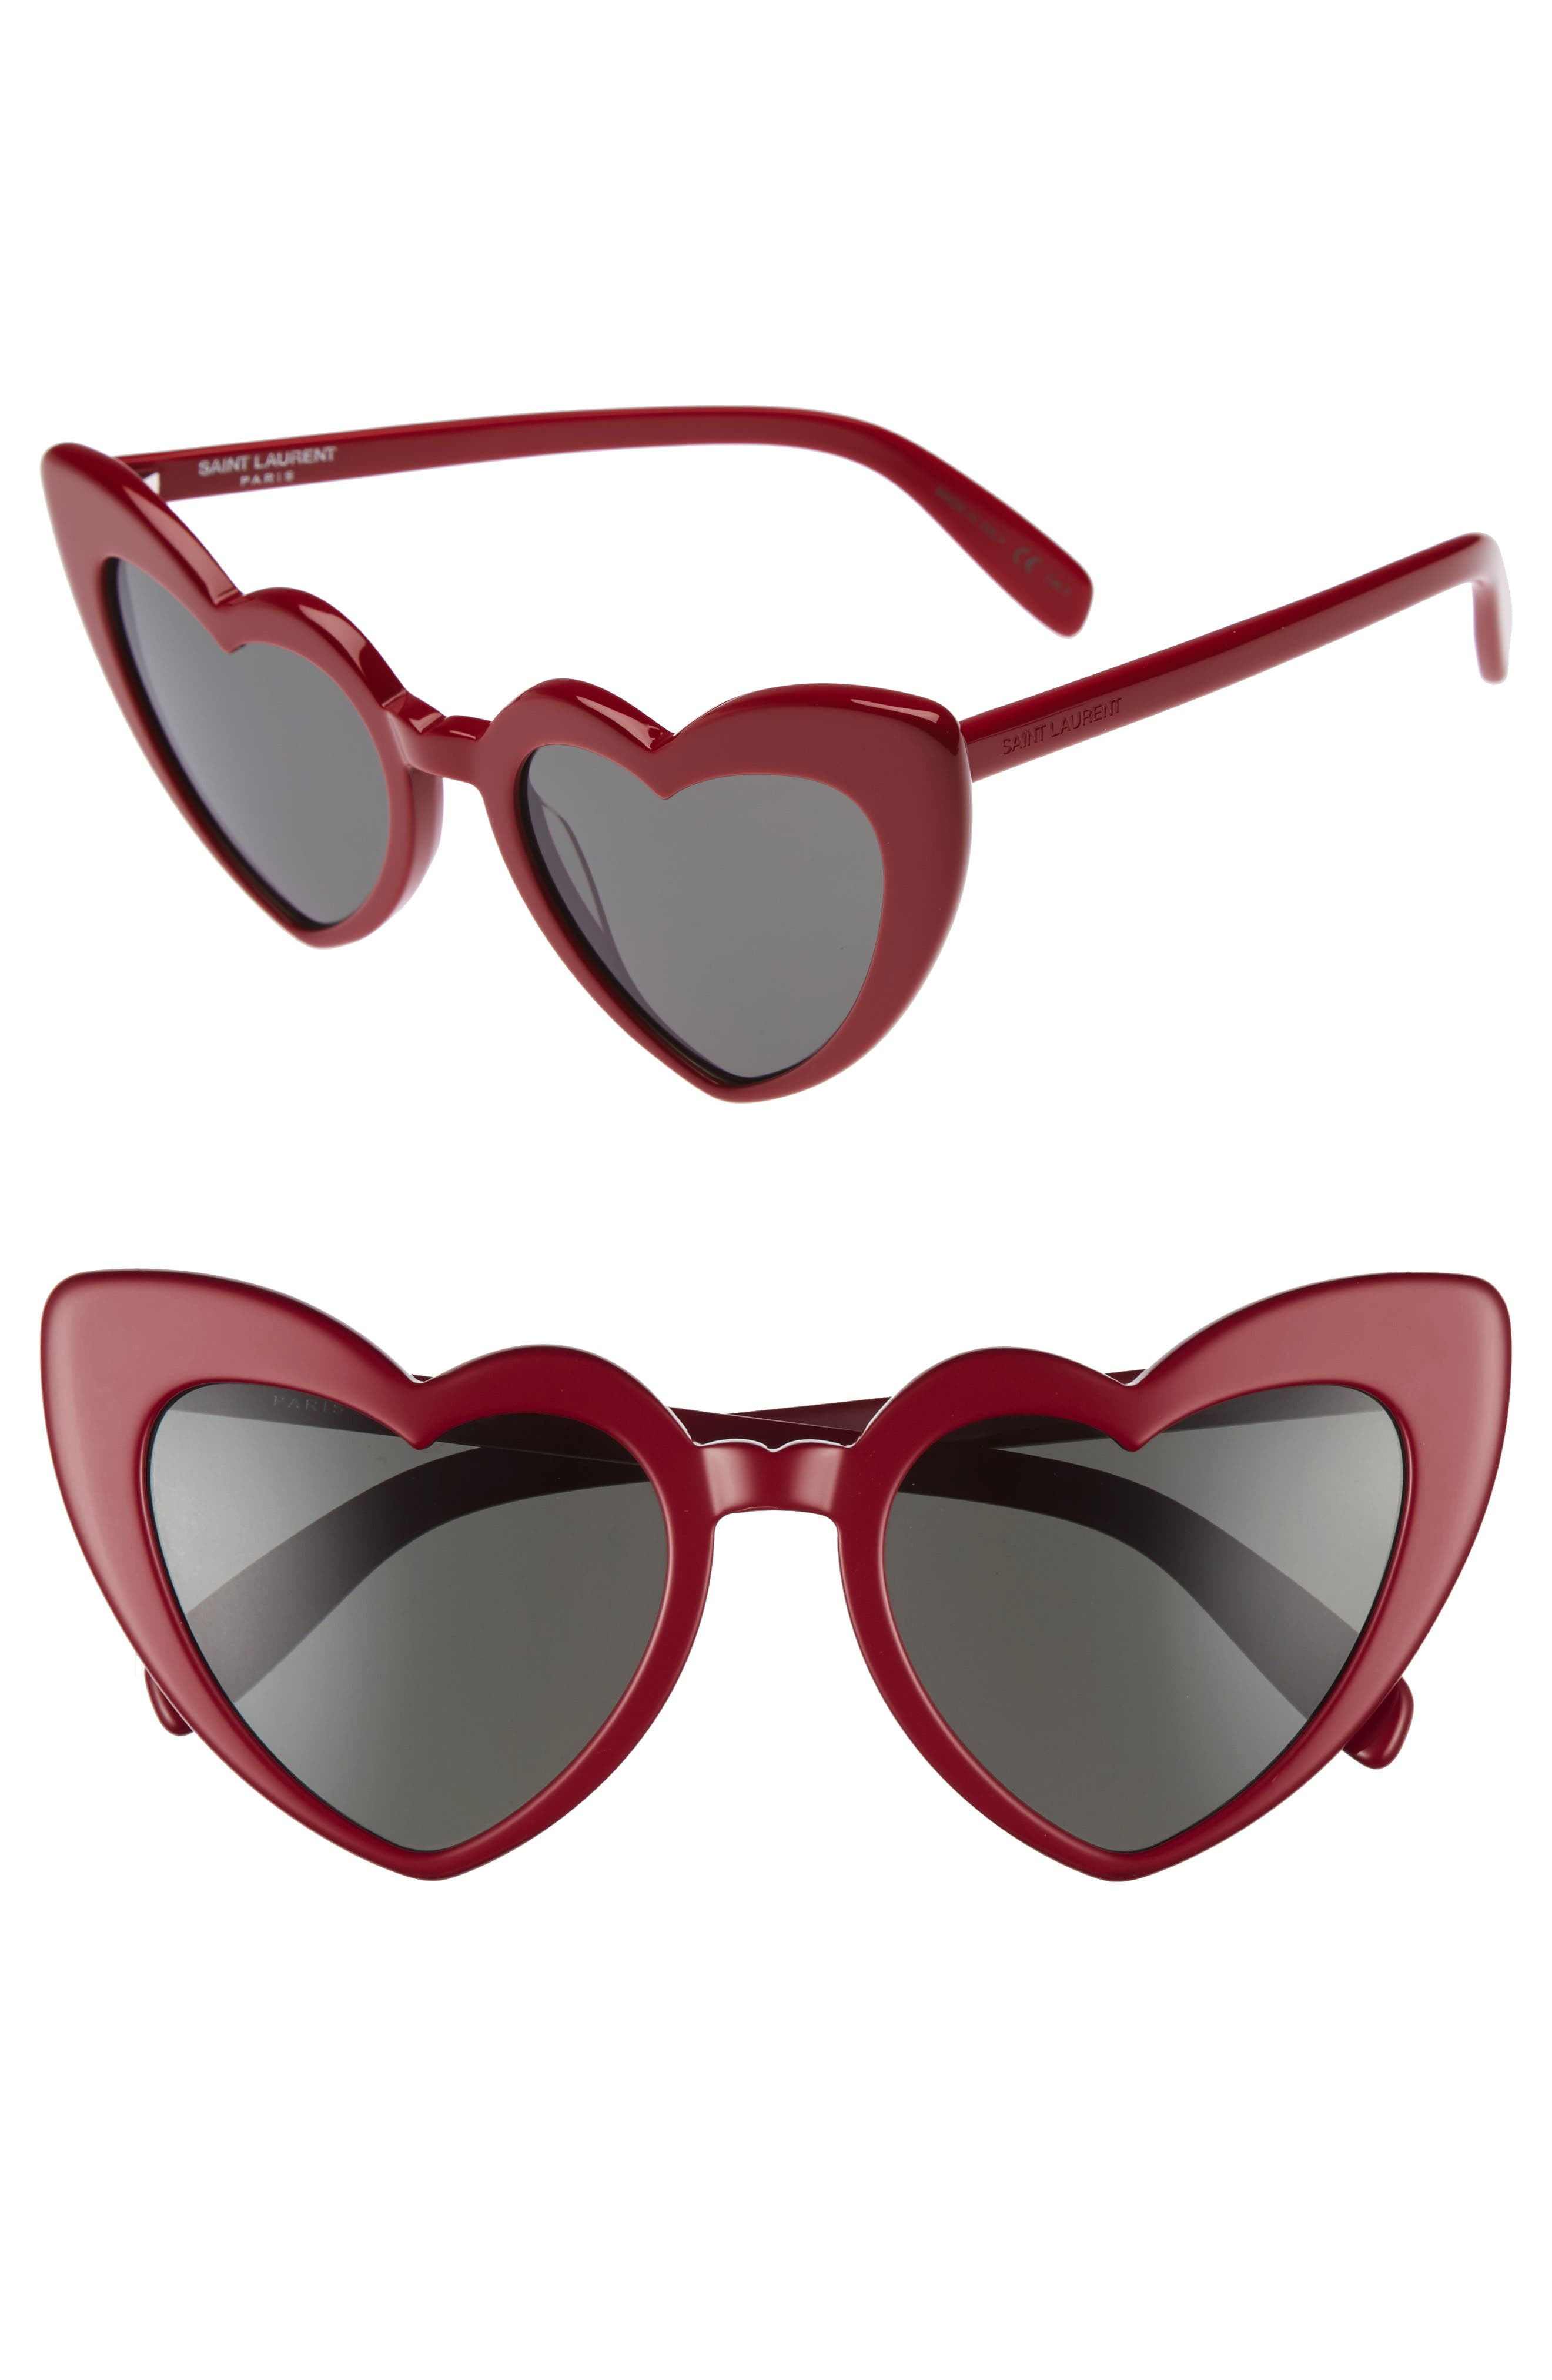 Loulou 54mm Heart Sunglasses,                         Main,                         color, RED/ GREY